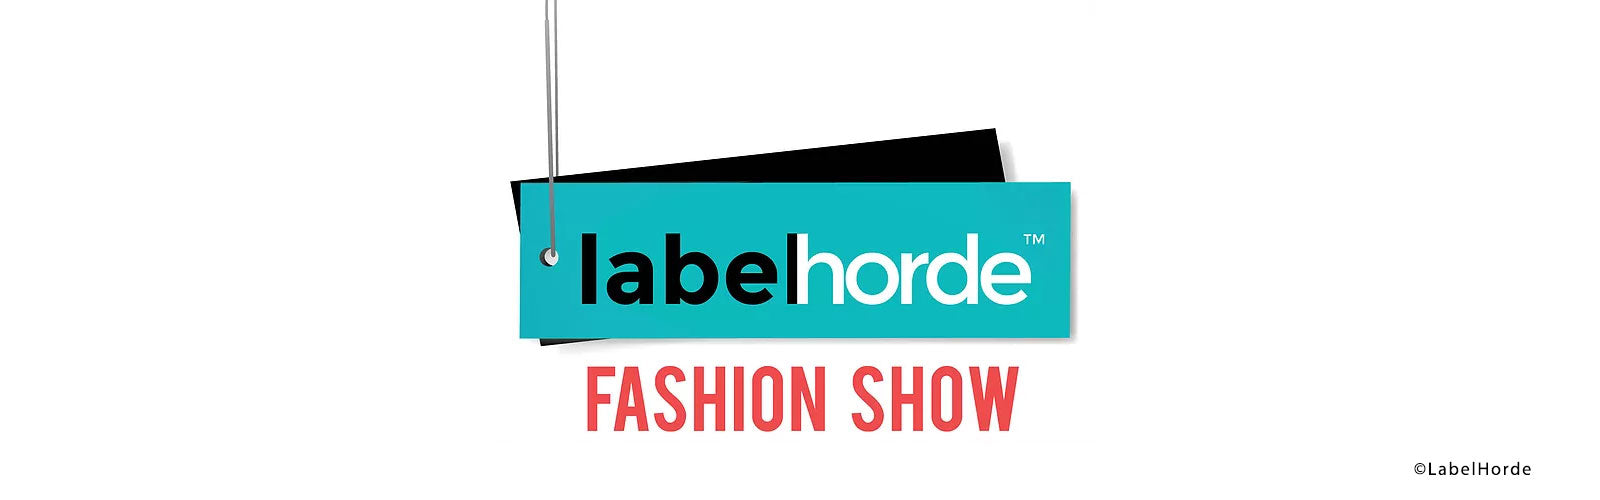 LabelHorde Fashion Show